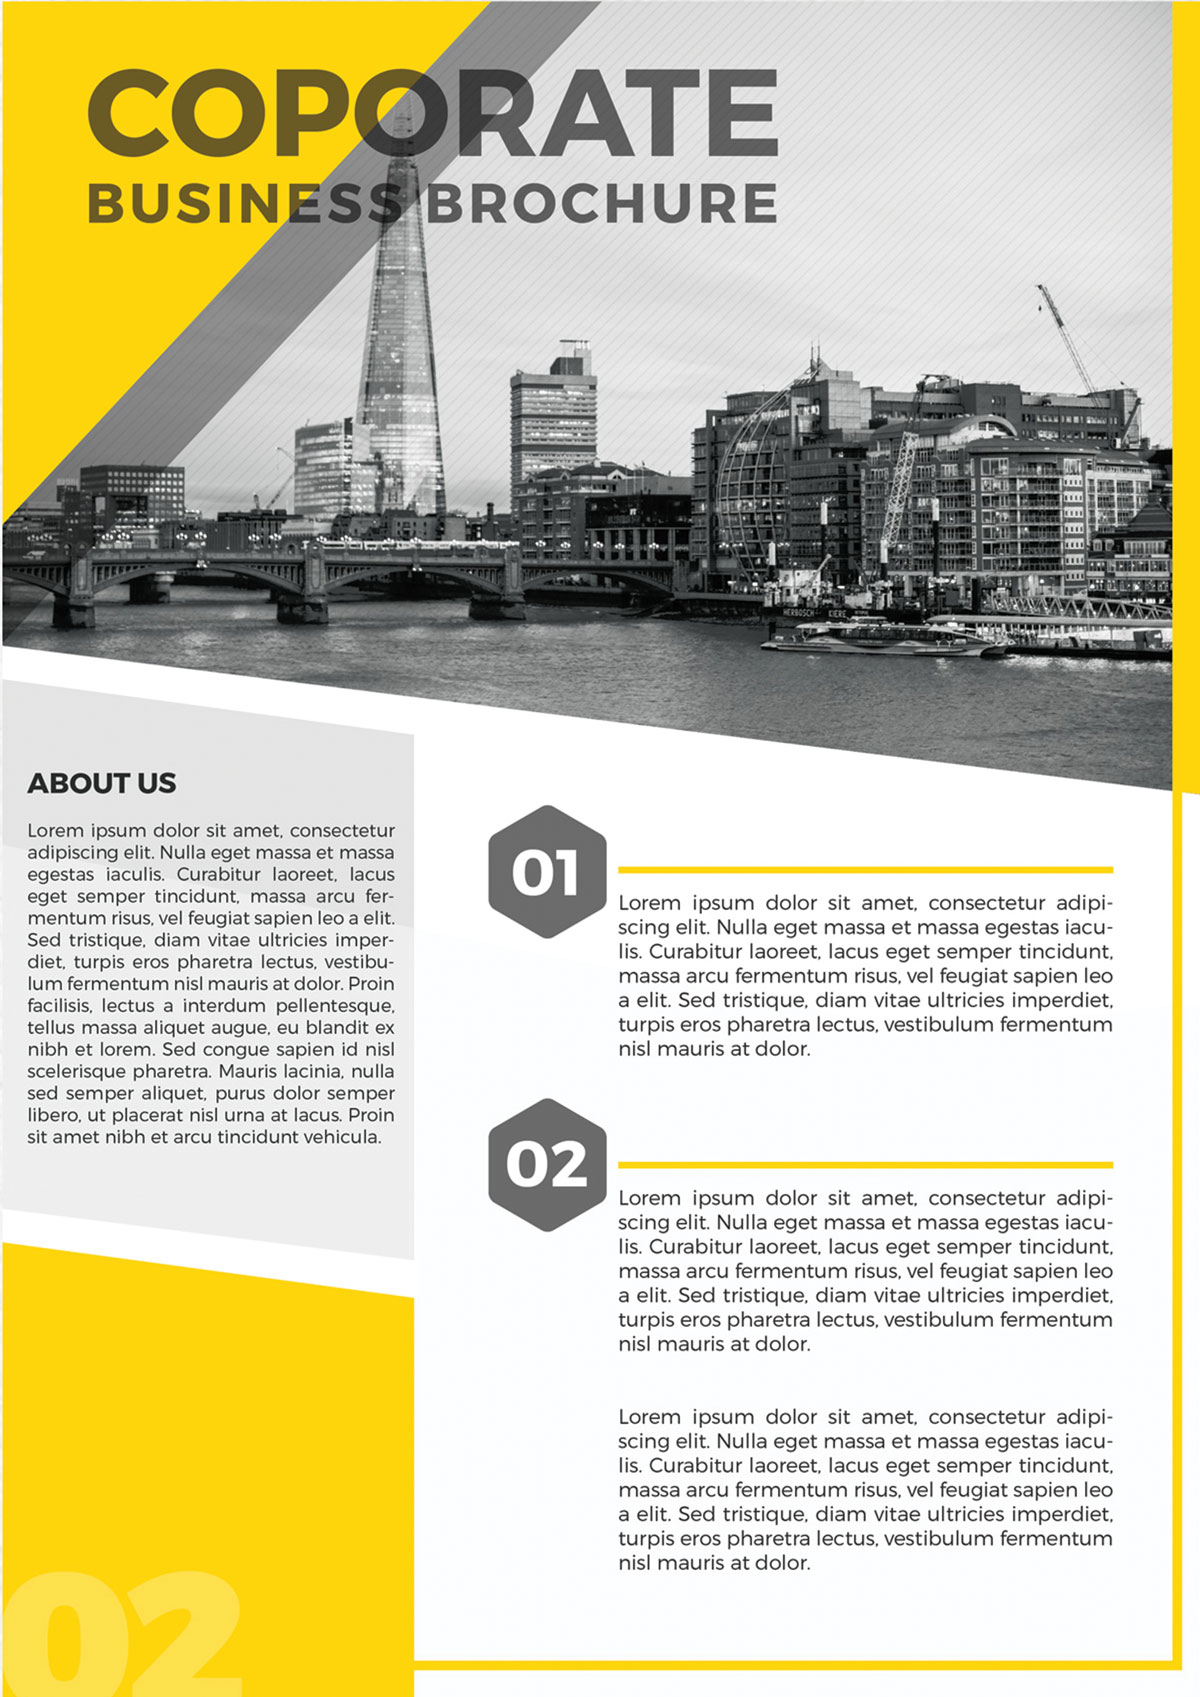 Real Estate Brochure Ideas By Real Estate Digital Branding Agency - New York, USA - Digital Media Branding & Broadcasting Agency provides highly creative Interactive web app, Web Development, corporate identity. by yantramstudio